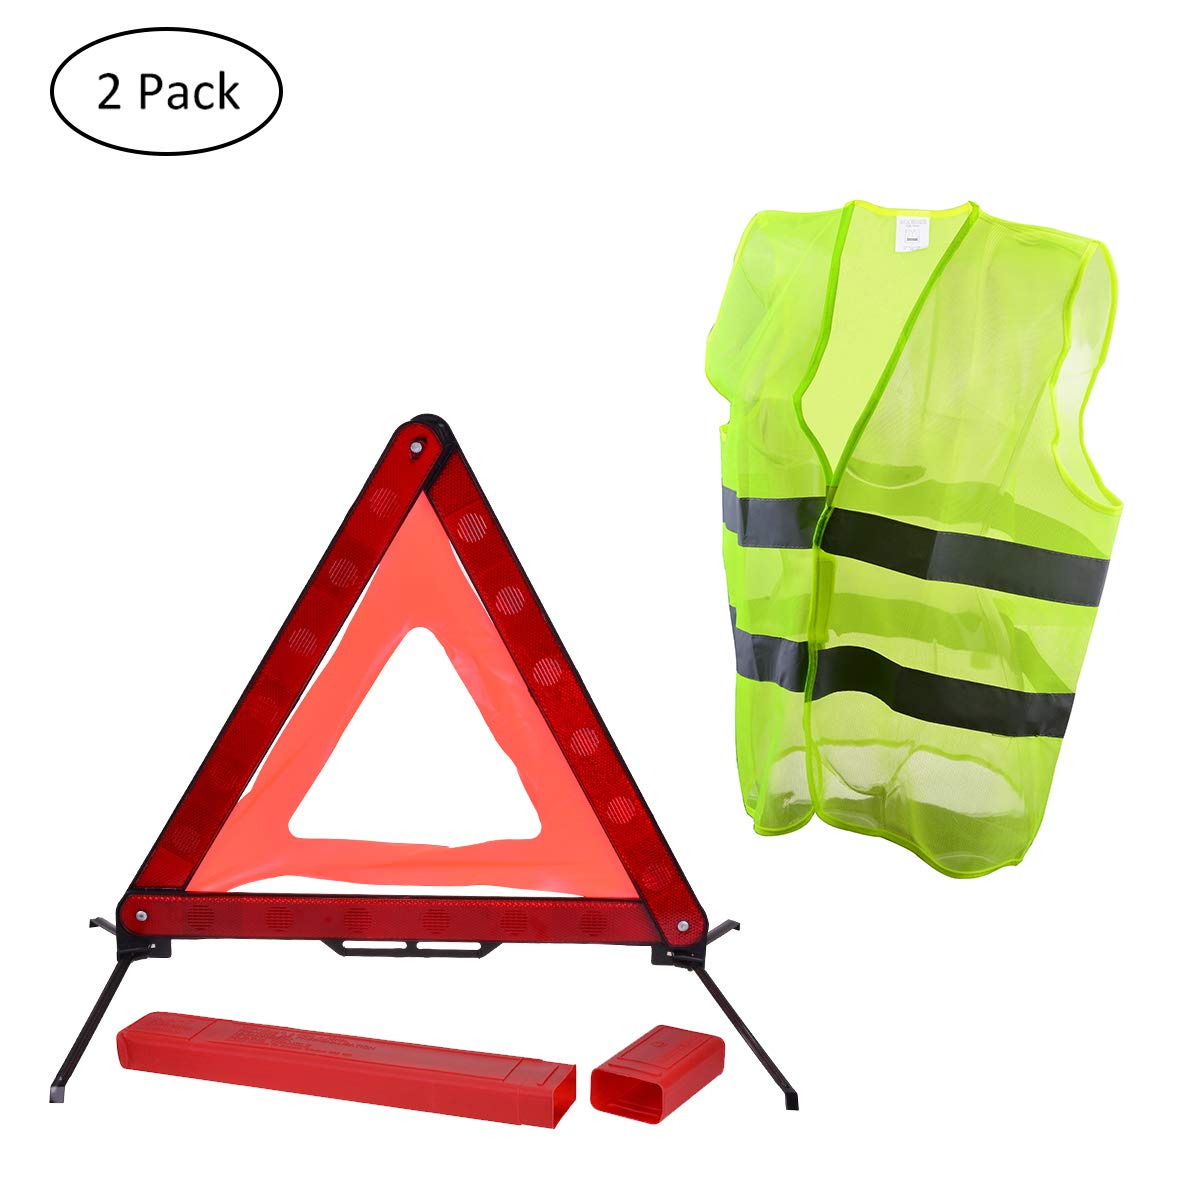 YoungRich Traffic Safety Sign Set 1 Pack Reflection Warning Emergency Triangle Plate with A Red PVC Case and 1 Pack Reflective Safety Vest Fluorescent Waistcoat for Construction Biking Driving